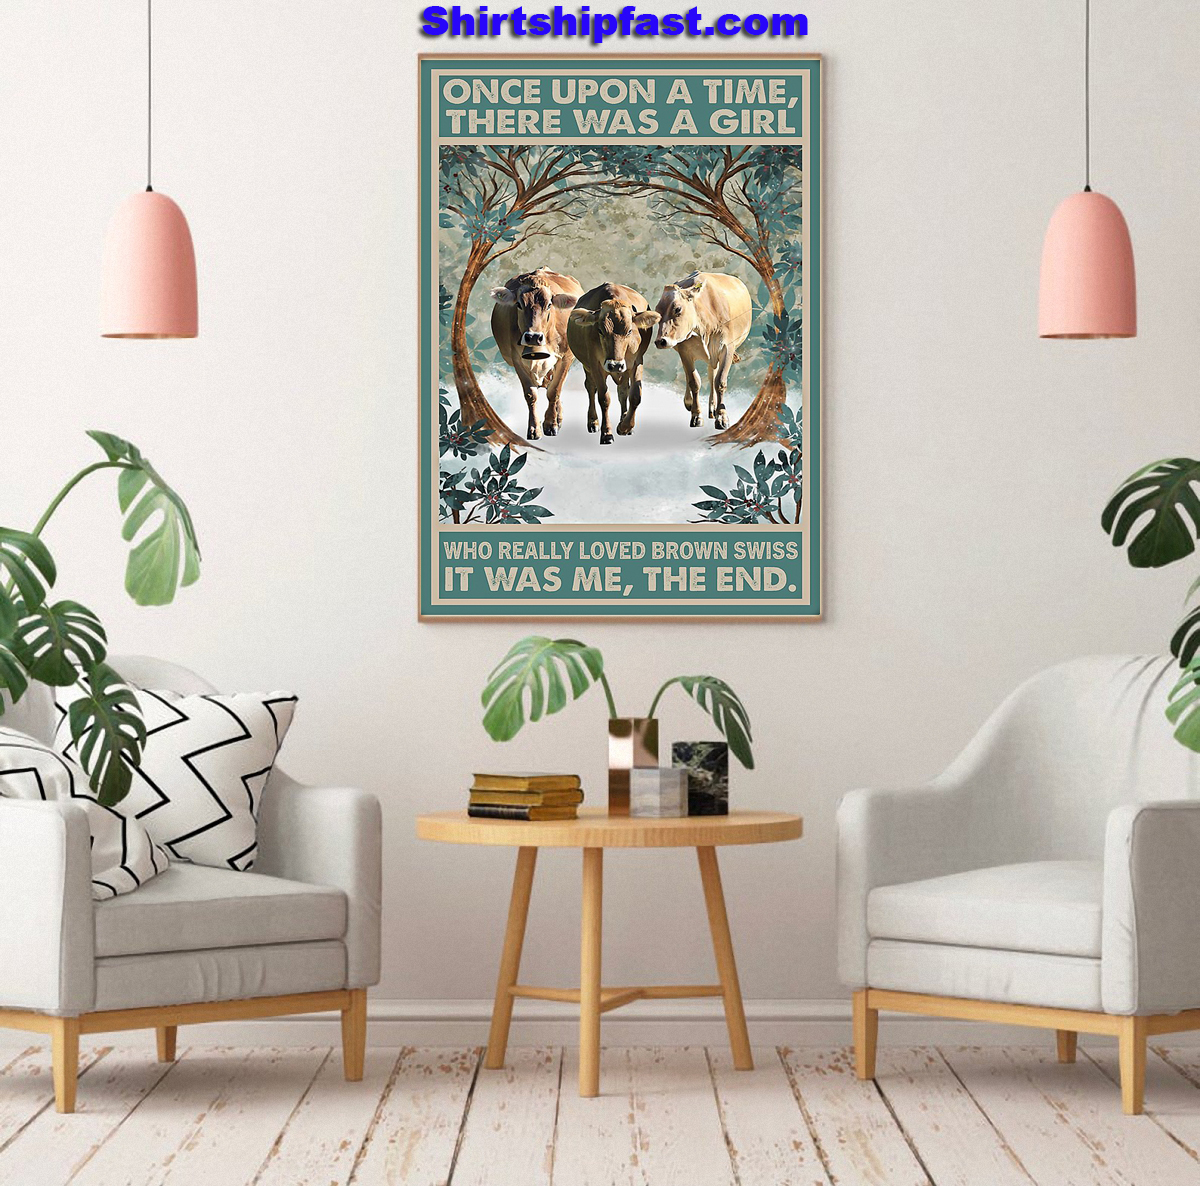 Once upon a time there was a girl who really loved brown swiss poster - Picture 1